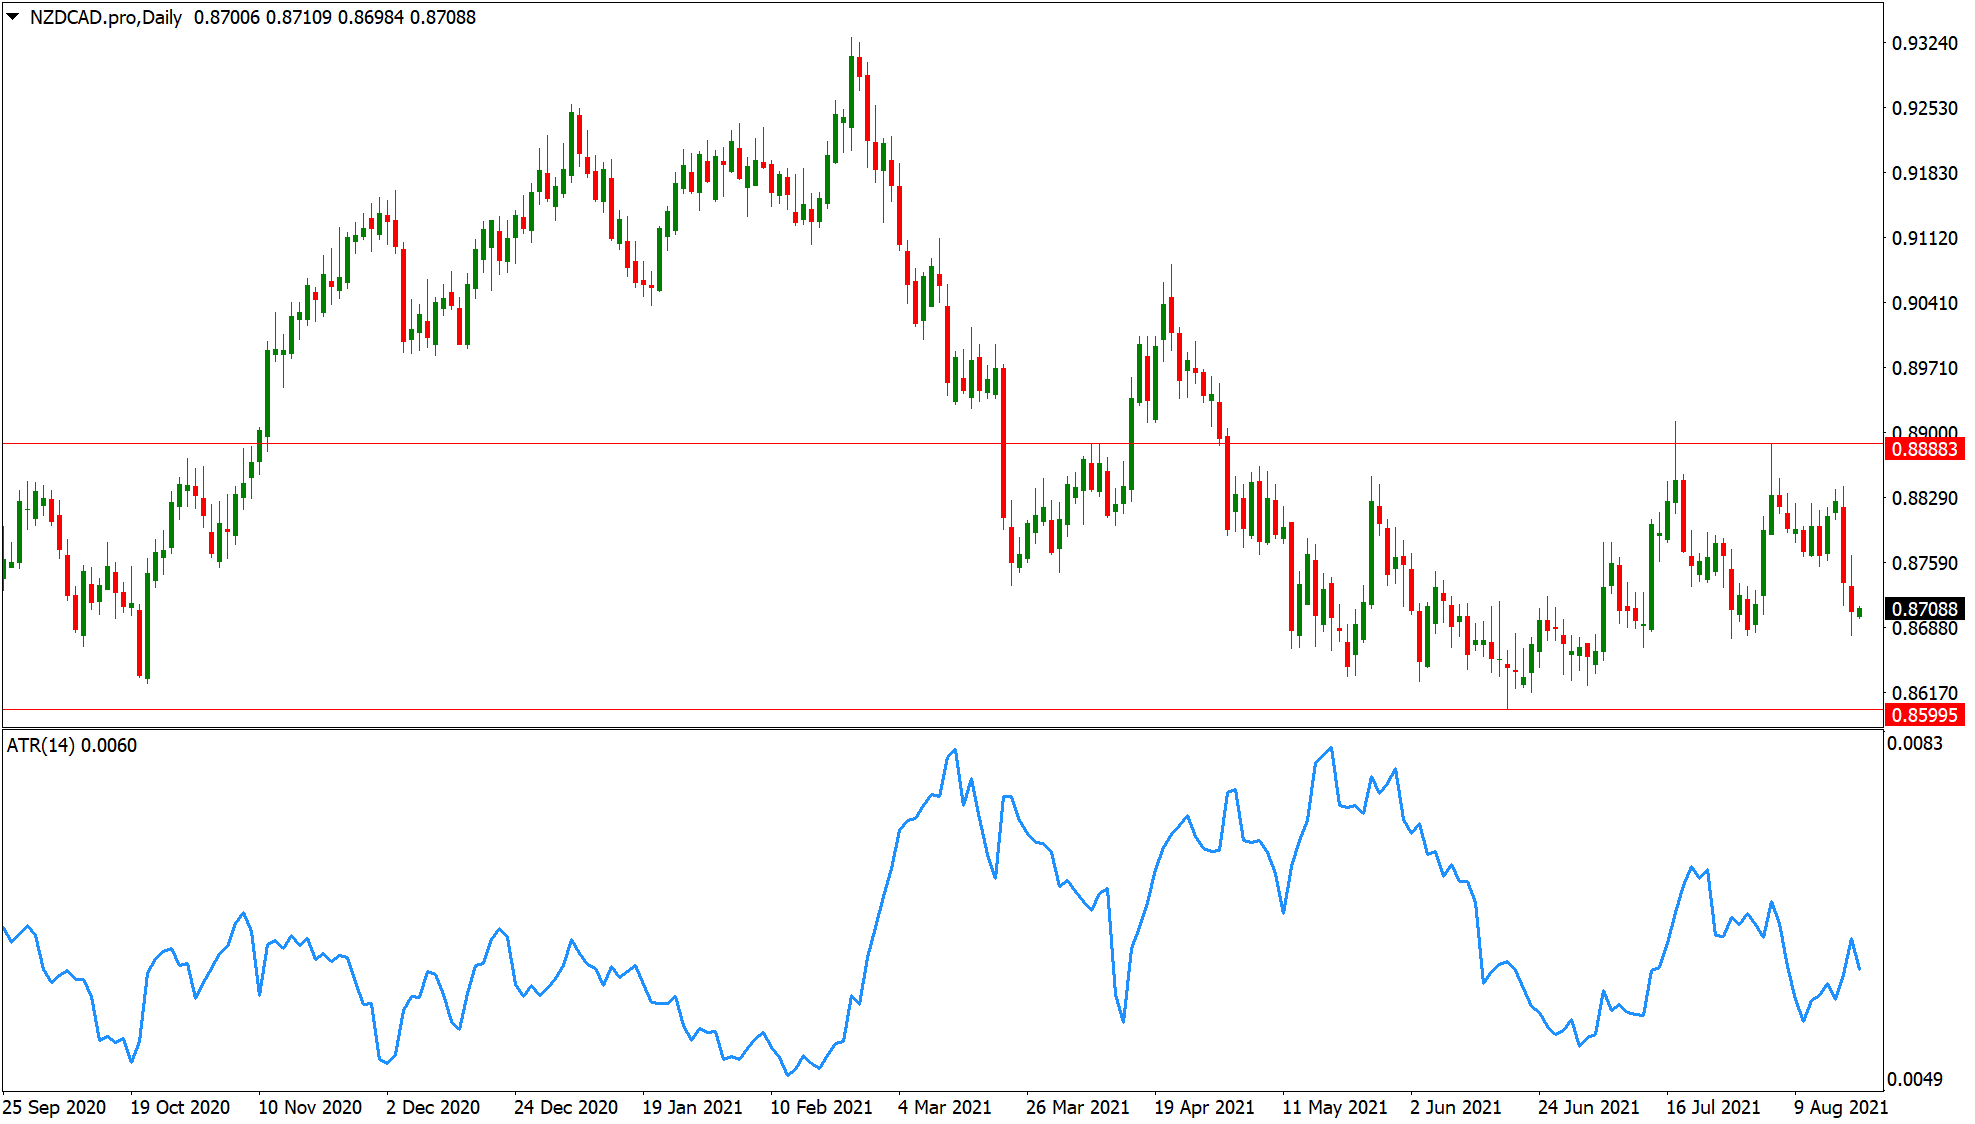 NZDCAD support and resistance levels